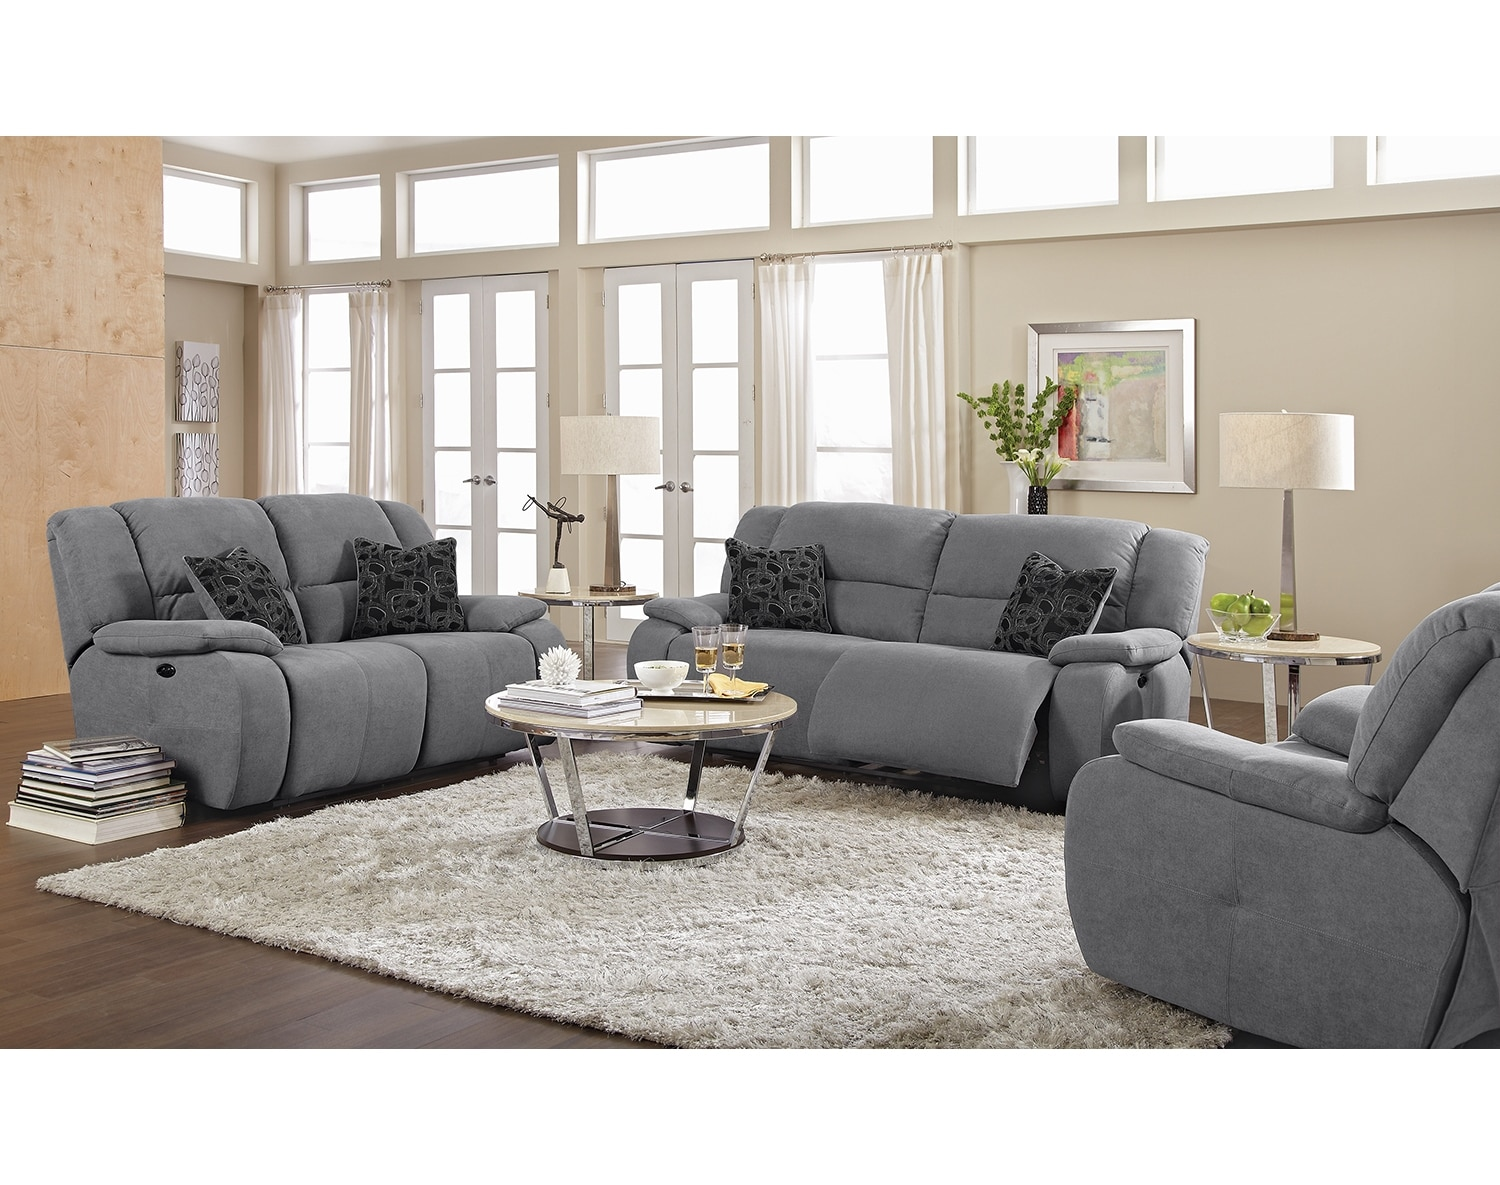 Living Room Furniture - The Fortuna Gray Collection - Power Reclining Sofa